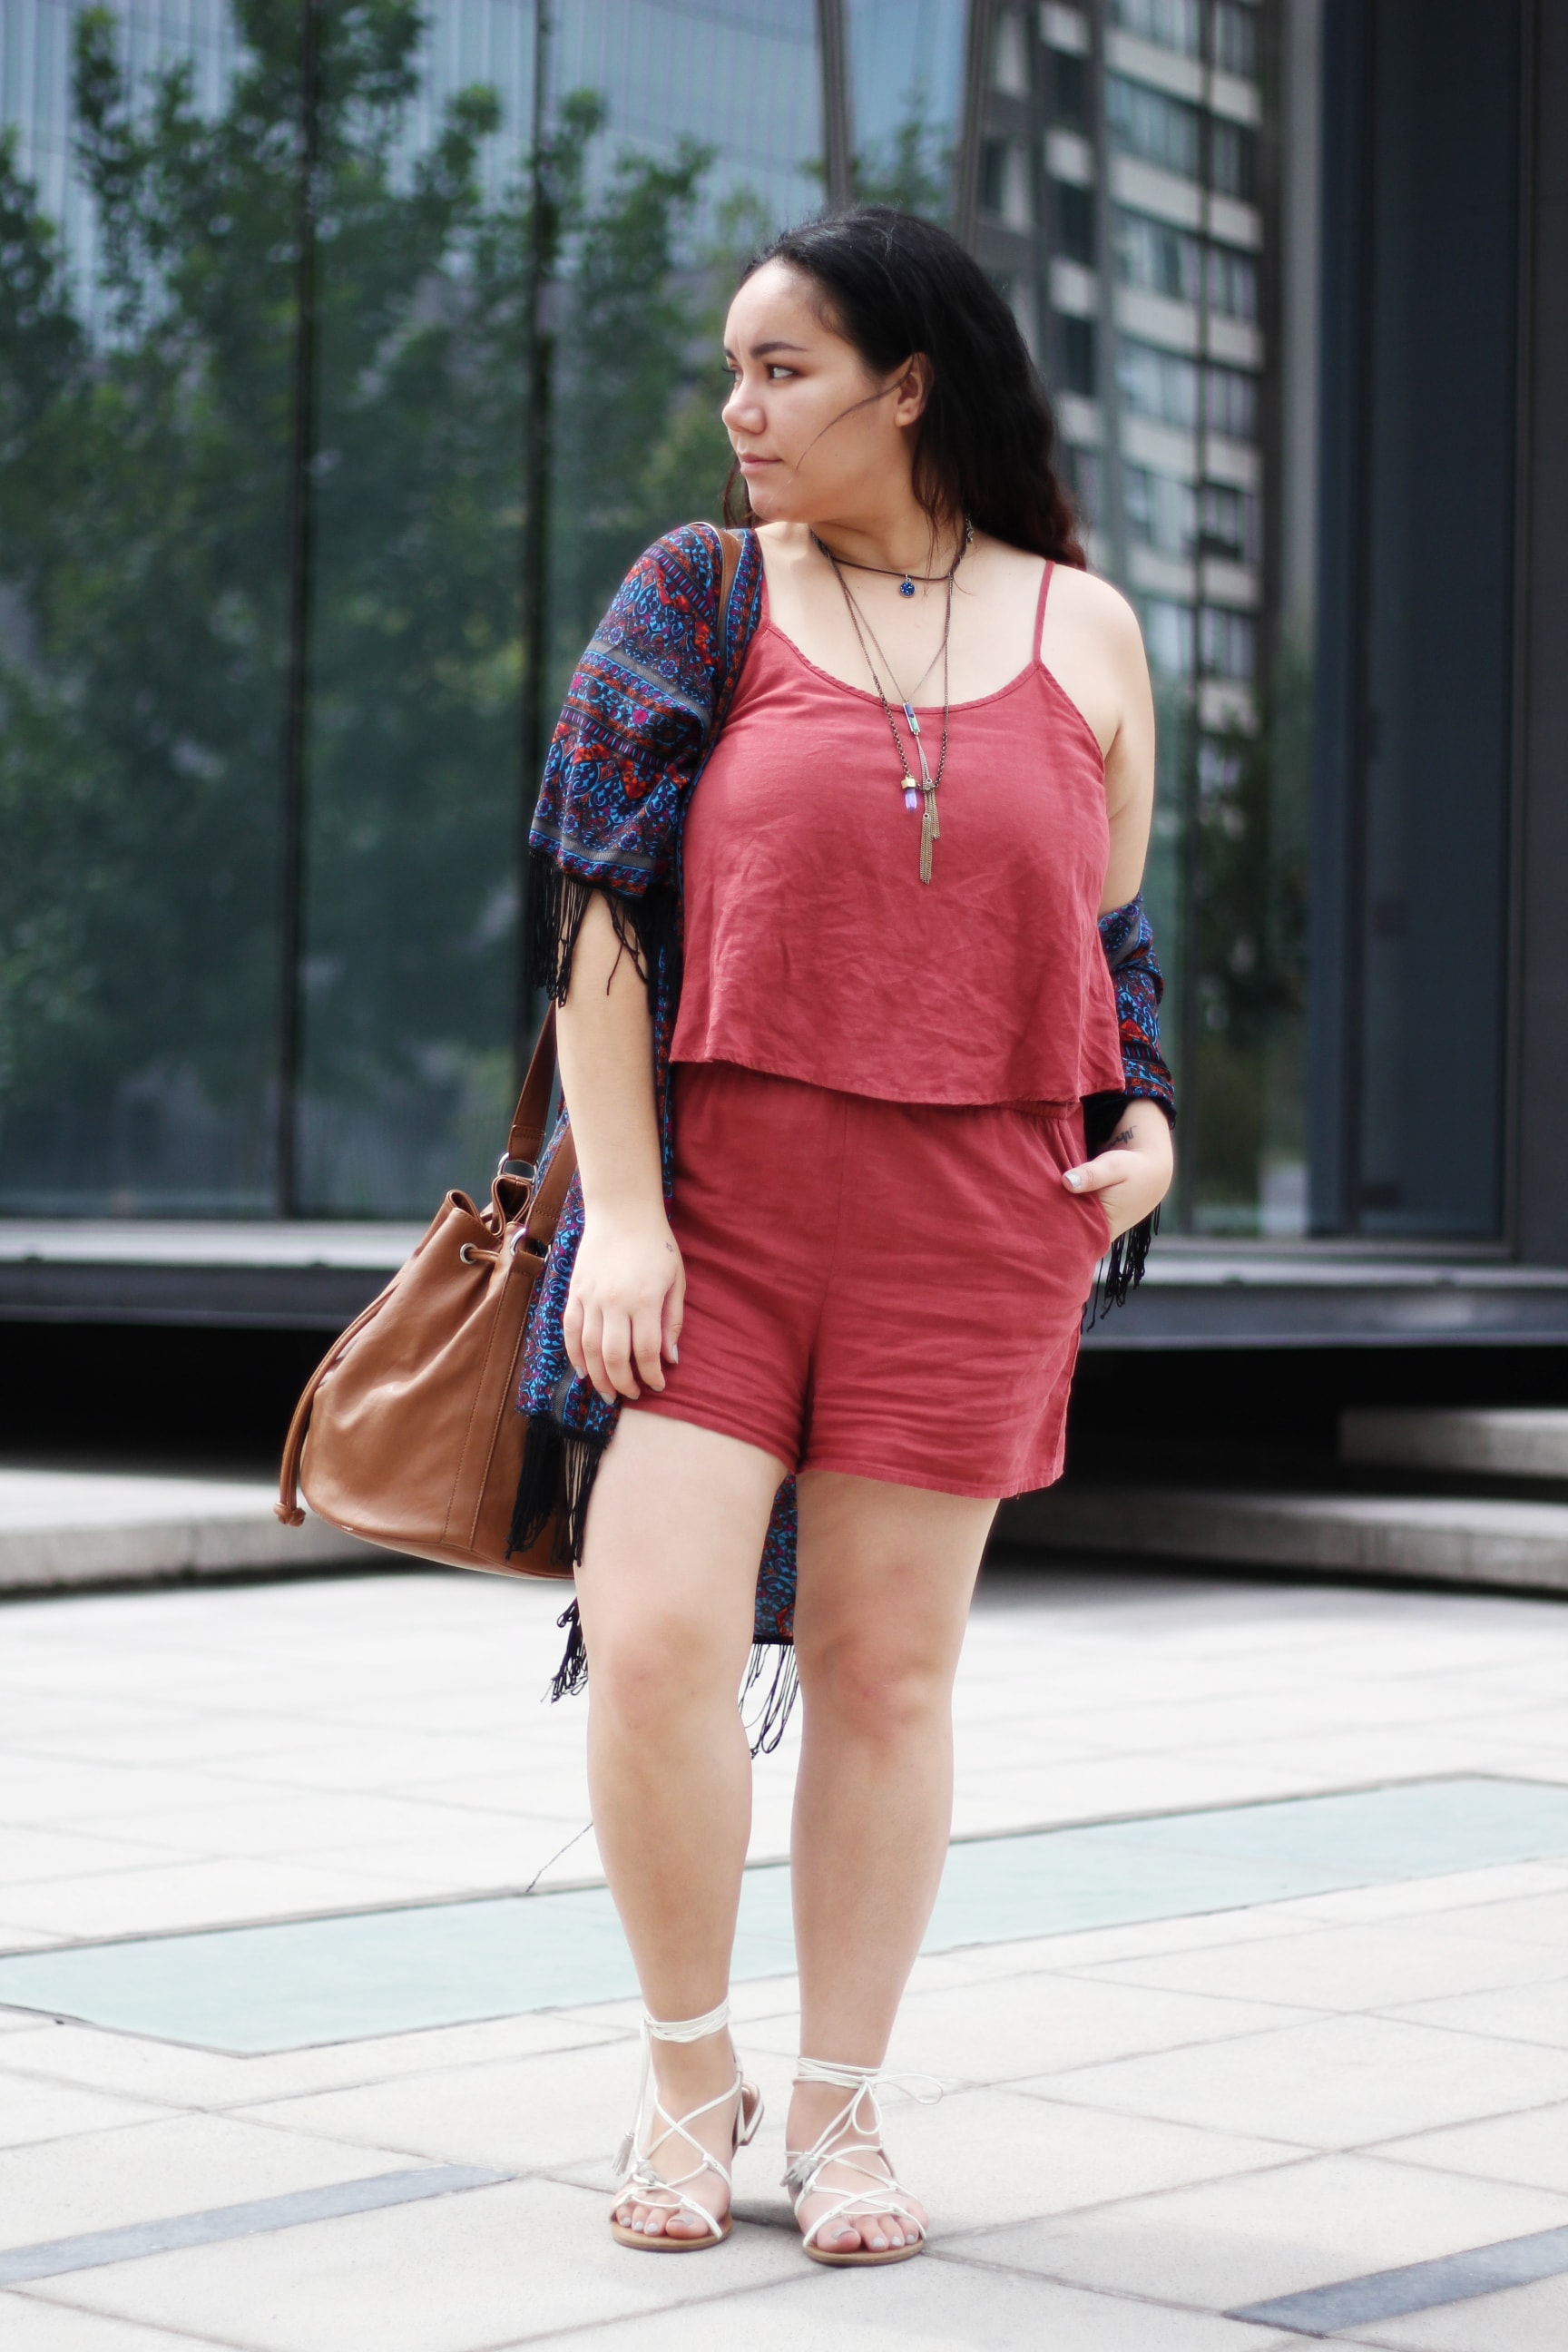 Romper plus size outfit ideas - Rompers for big thighs | Golden Strokes